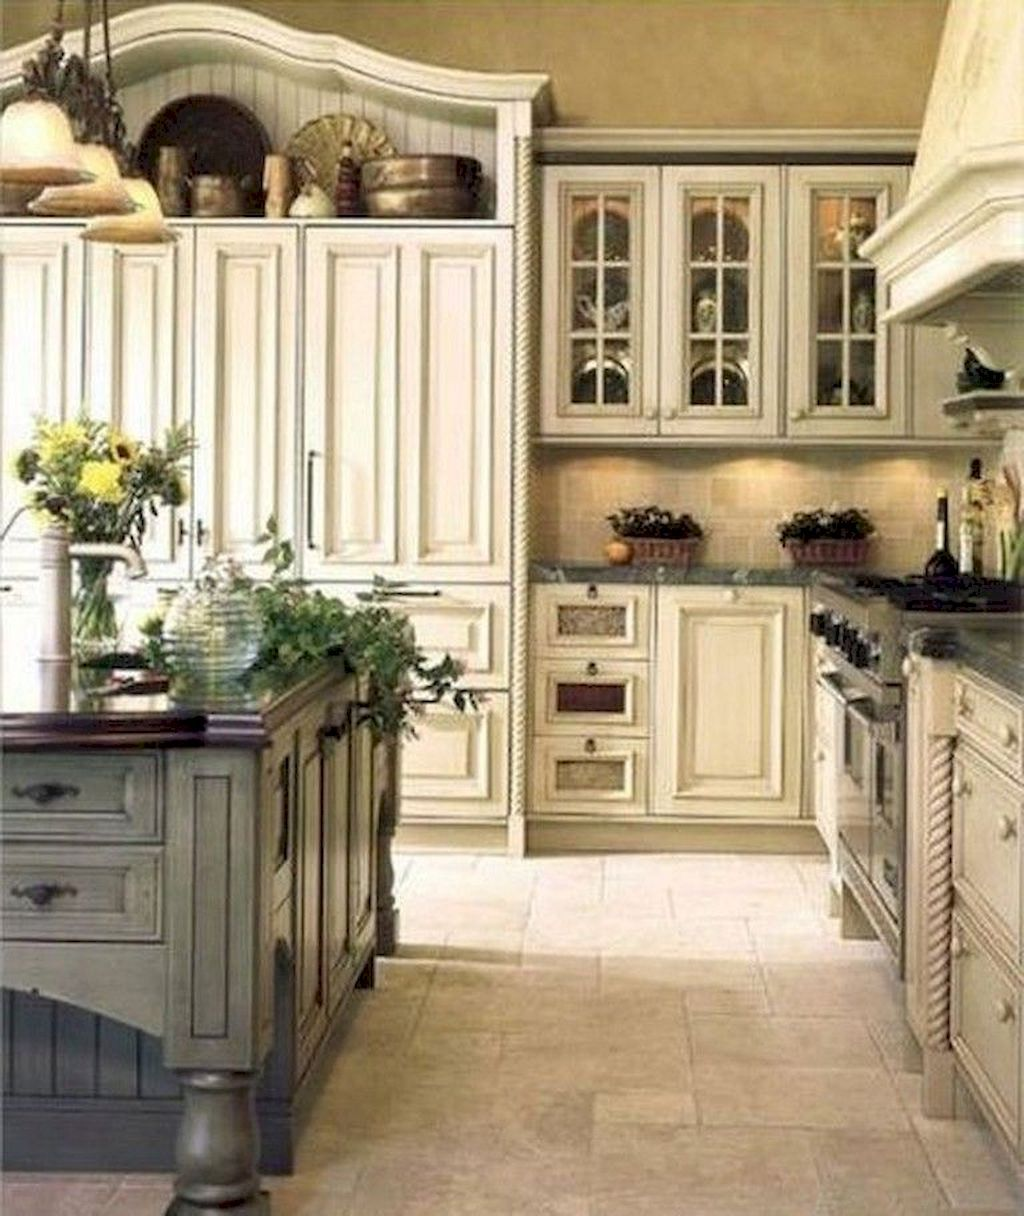 60 stunning french country kitchen decor ideas country kitchen designs french country on kitchen interior french country id=49351